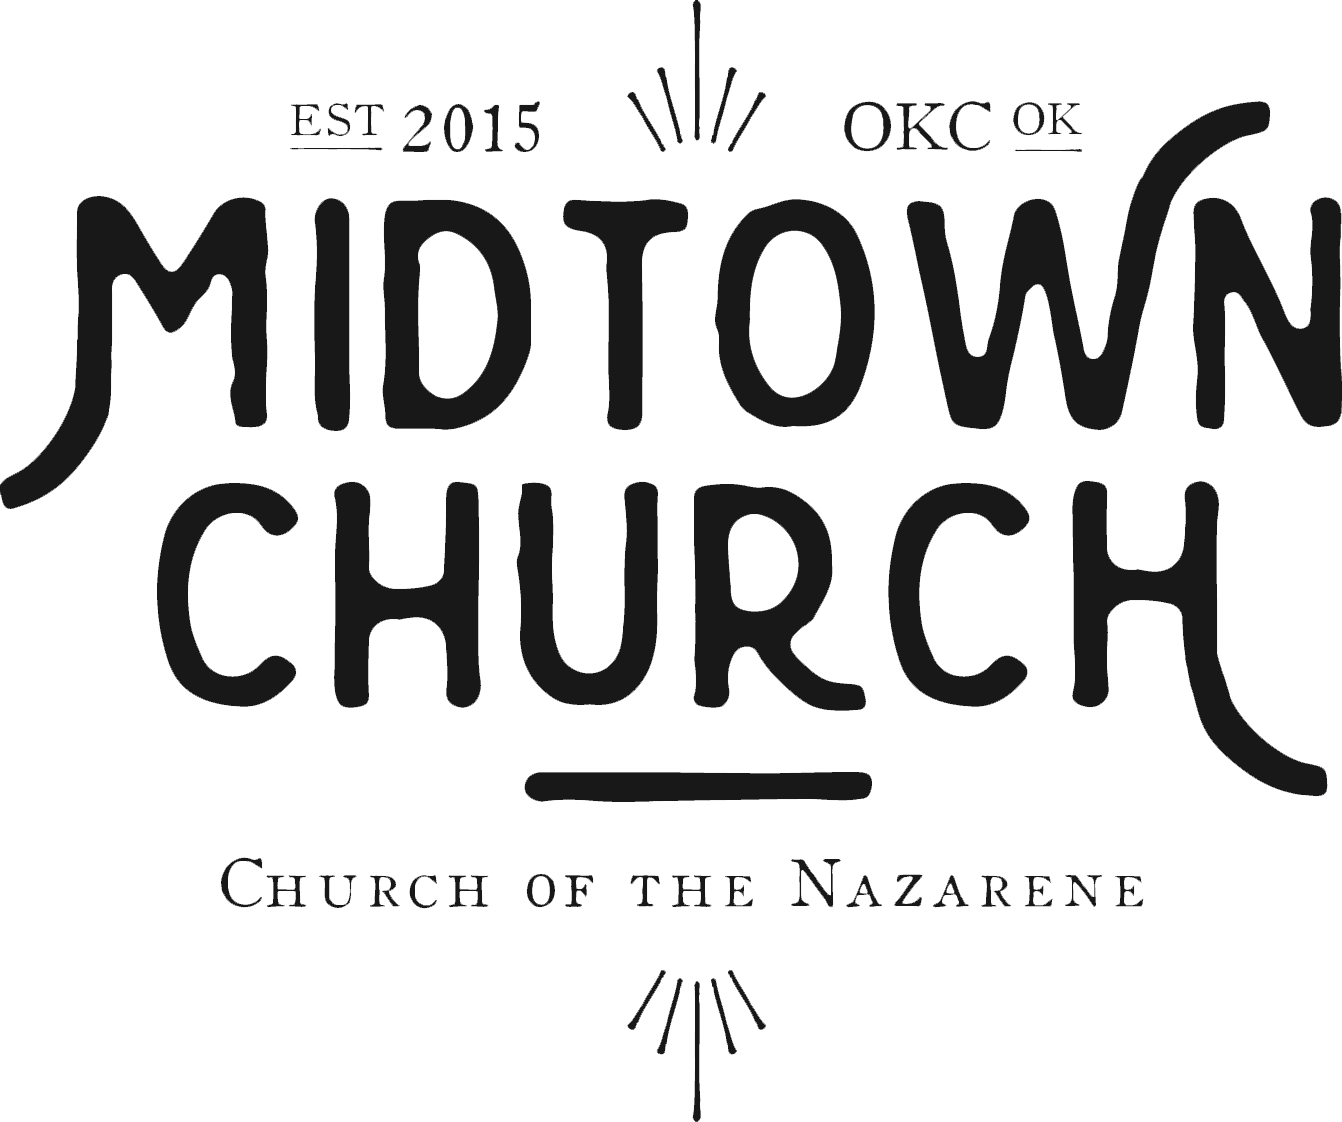 Midtown Church OKC